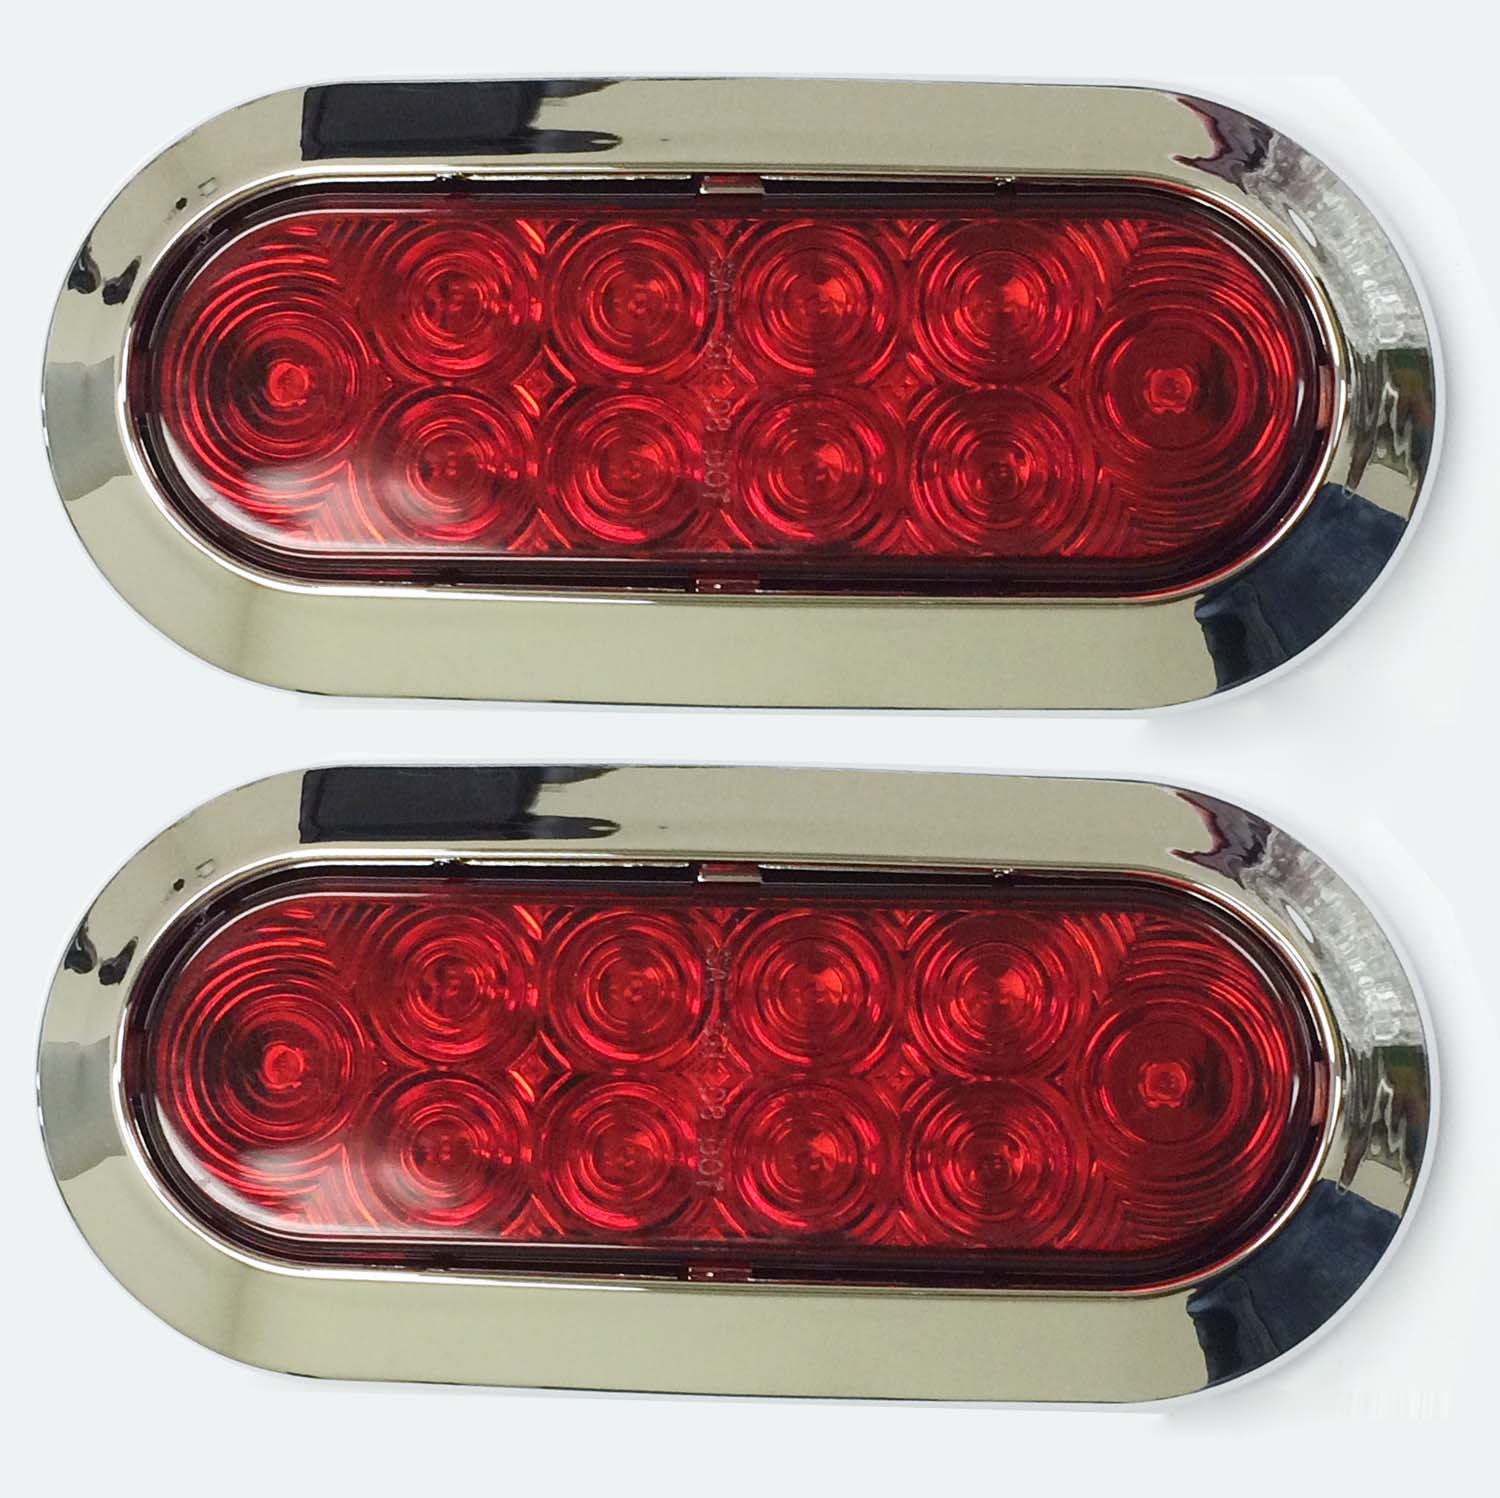 Set Of 2 Surface Mount Red 6 Oval 10 Led Trailer Truck Also Tail Lights Along With Wiring Stop Turn Light W Chrome Trim 24029 Automotive